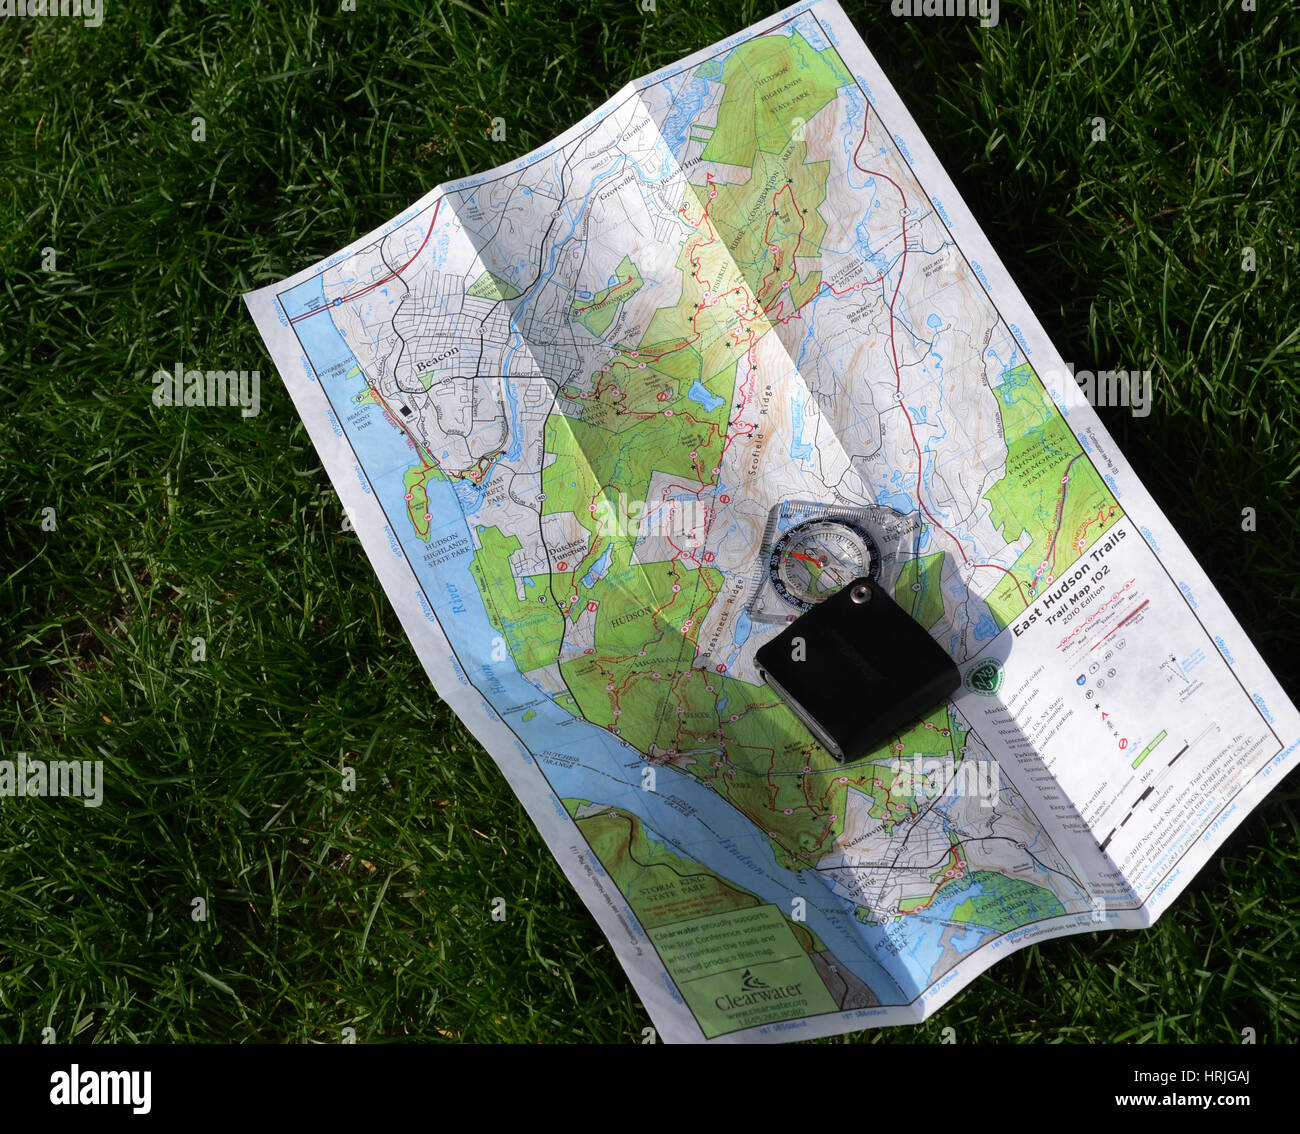 Compass and Map - Stock Image